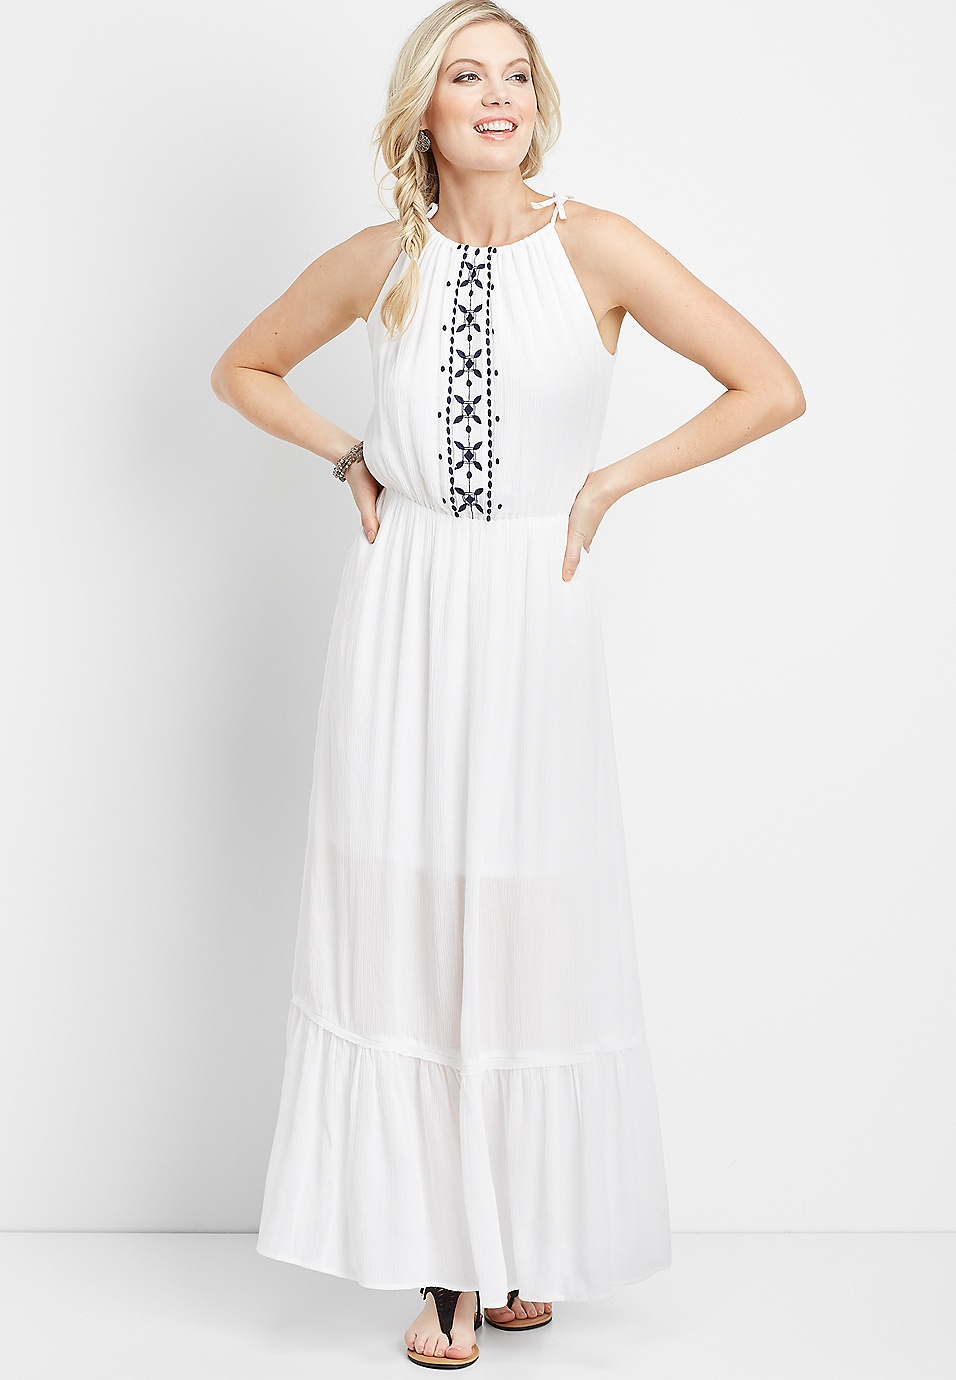 792b149d8c8c1 embroidered halter top maxi dress | maurices